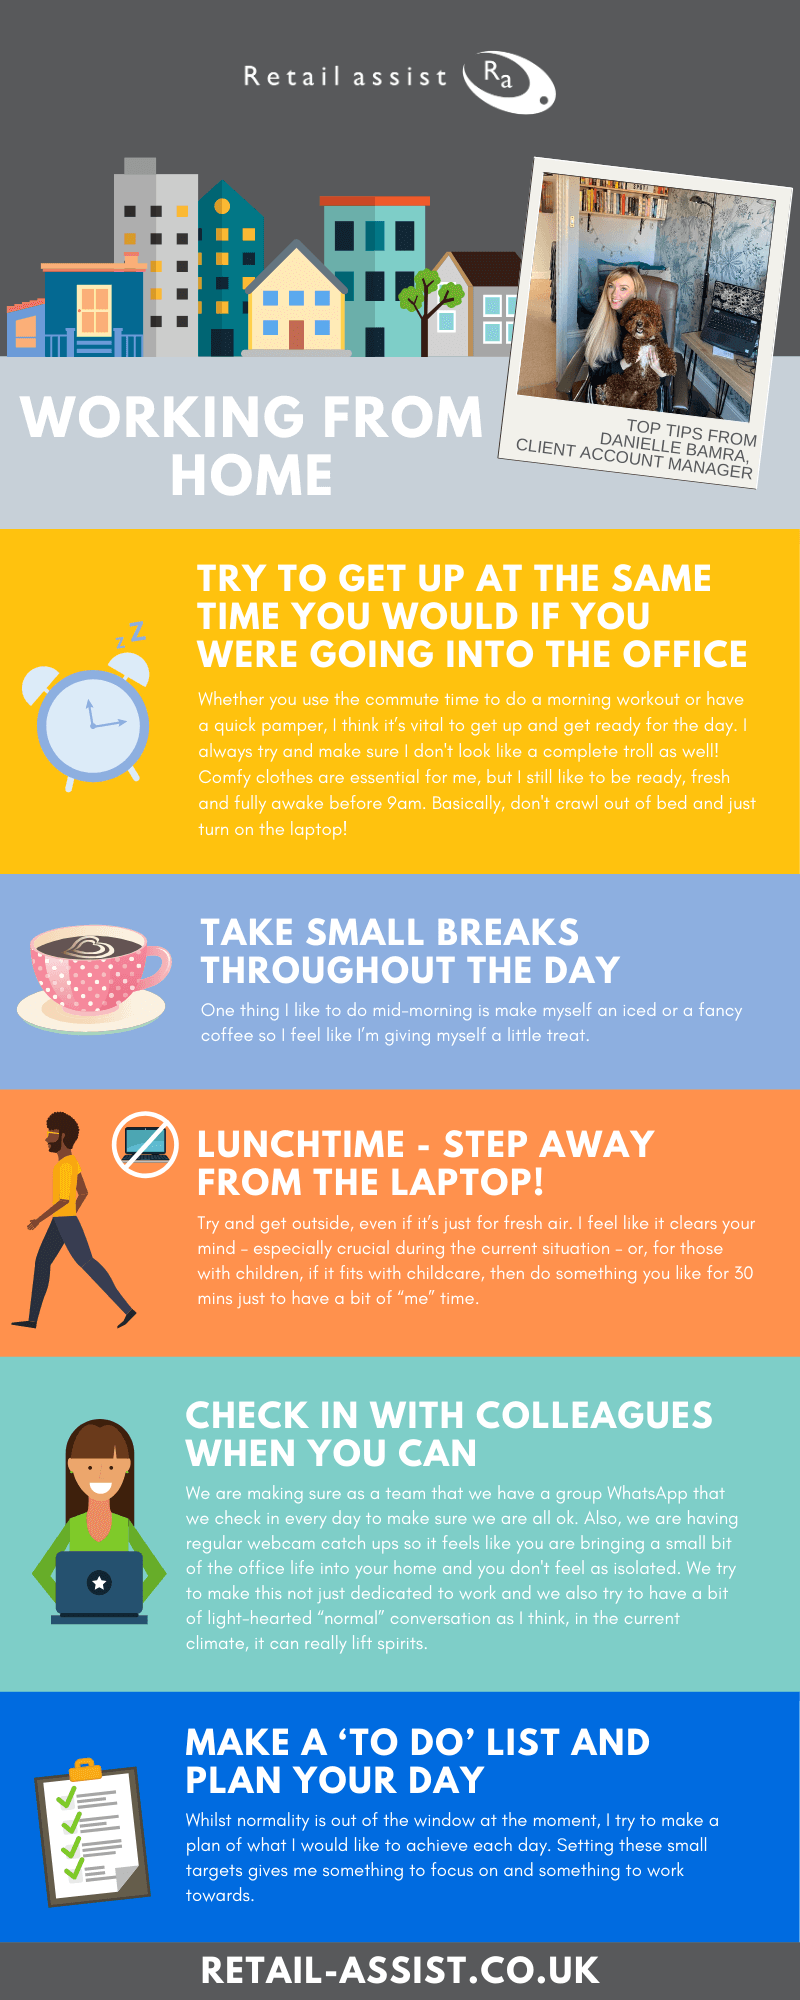 Working from home top tips infographic